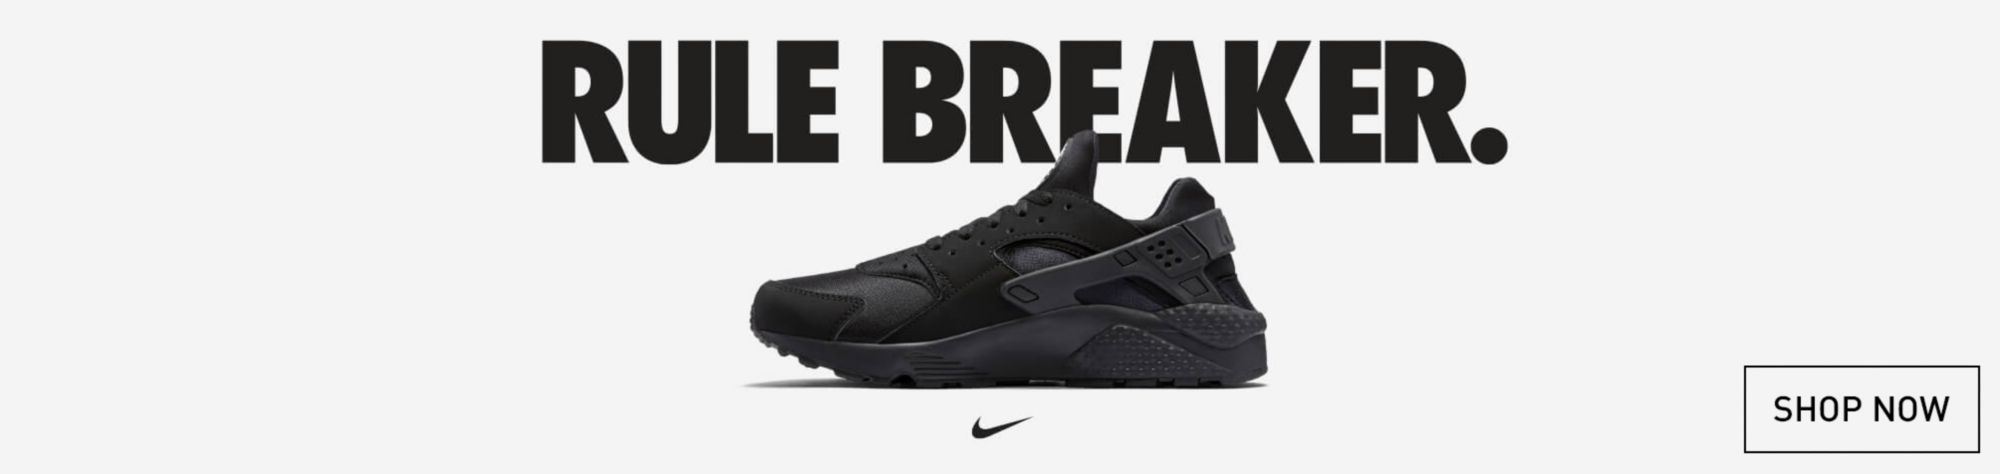 Nike Air Huarache Shoes